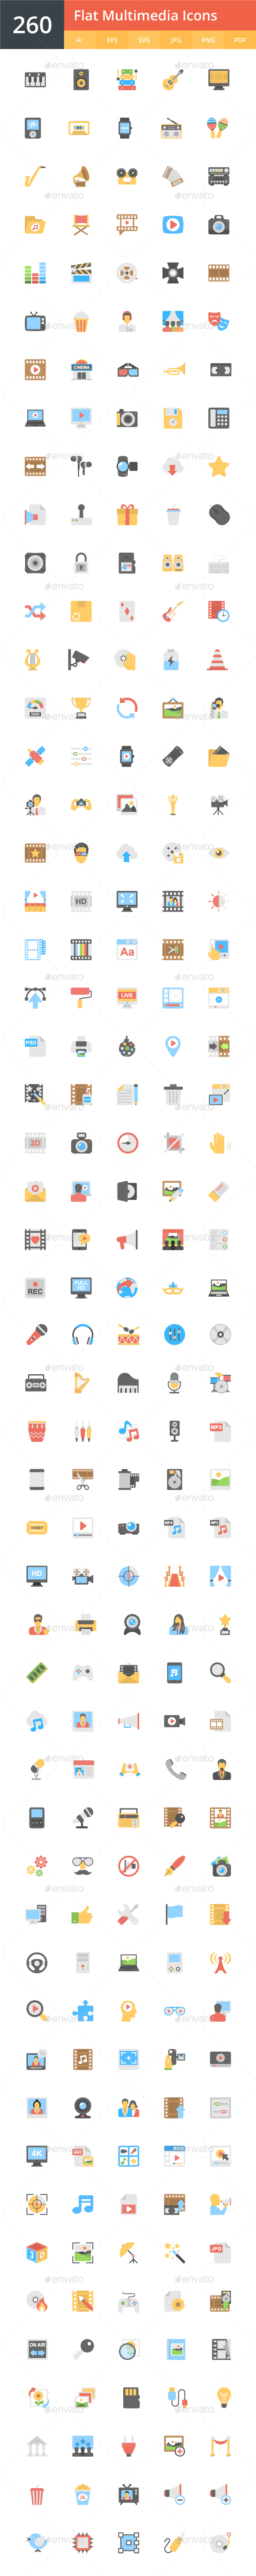 GraphicRiver 260 Flat Multimedia Icons 20493468